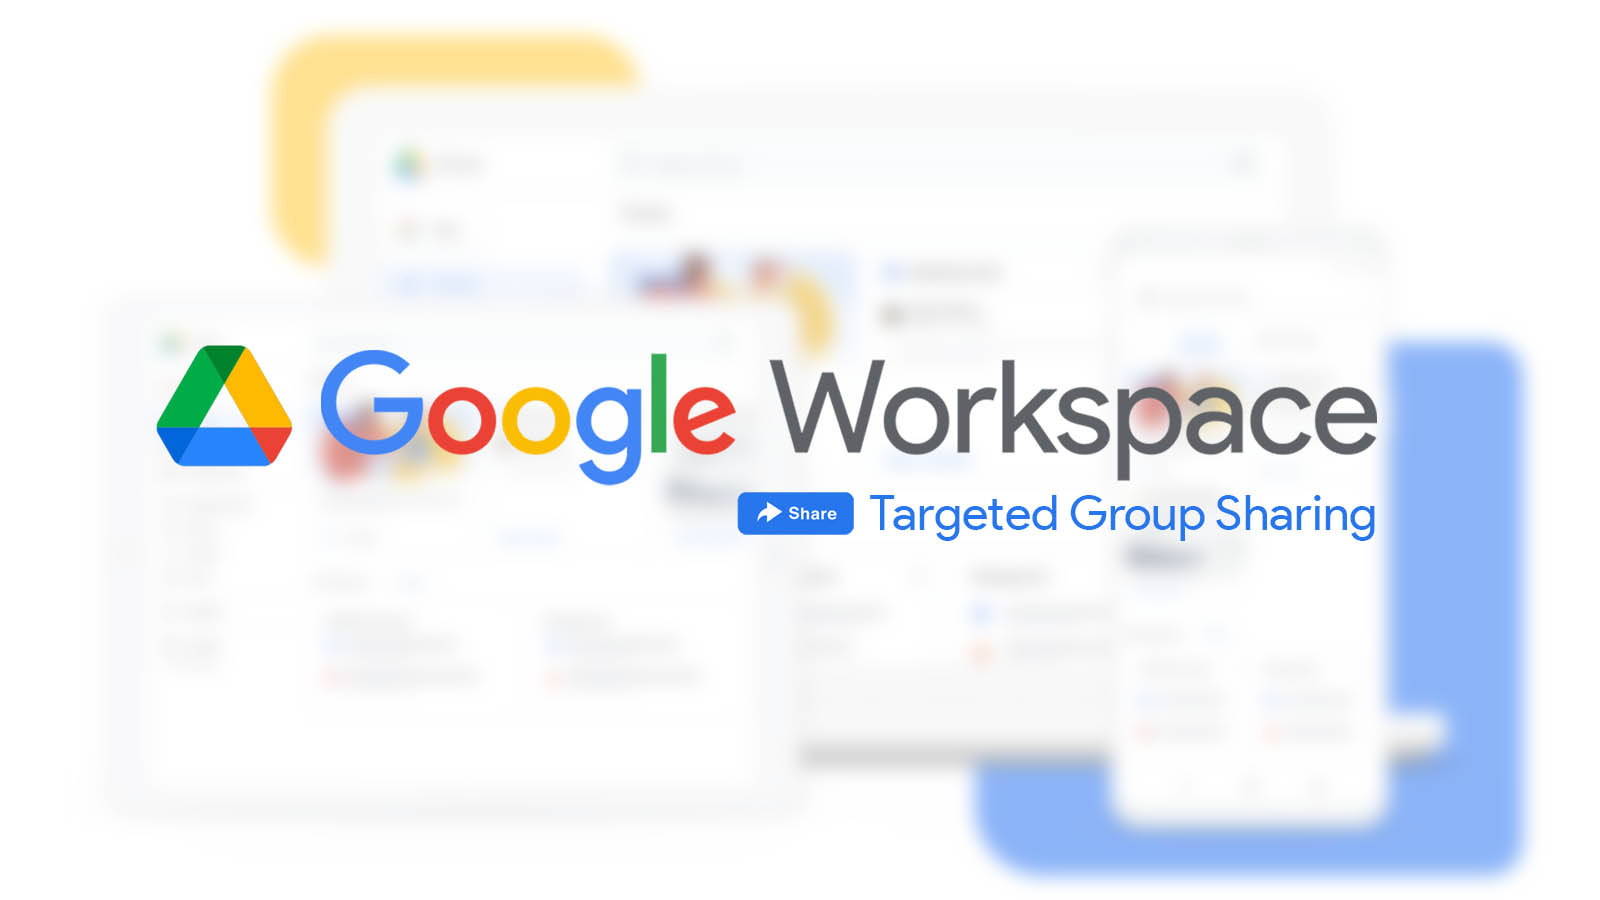 Google Workspace Now Allows Limiting Drive Sharing to Targeted Groups